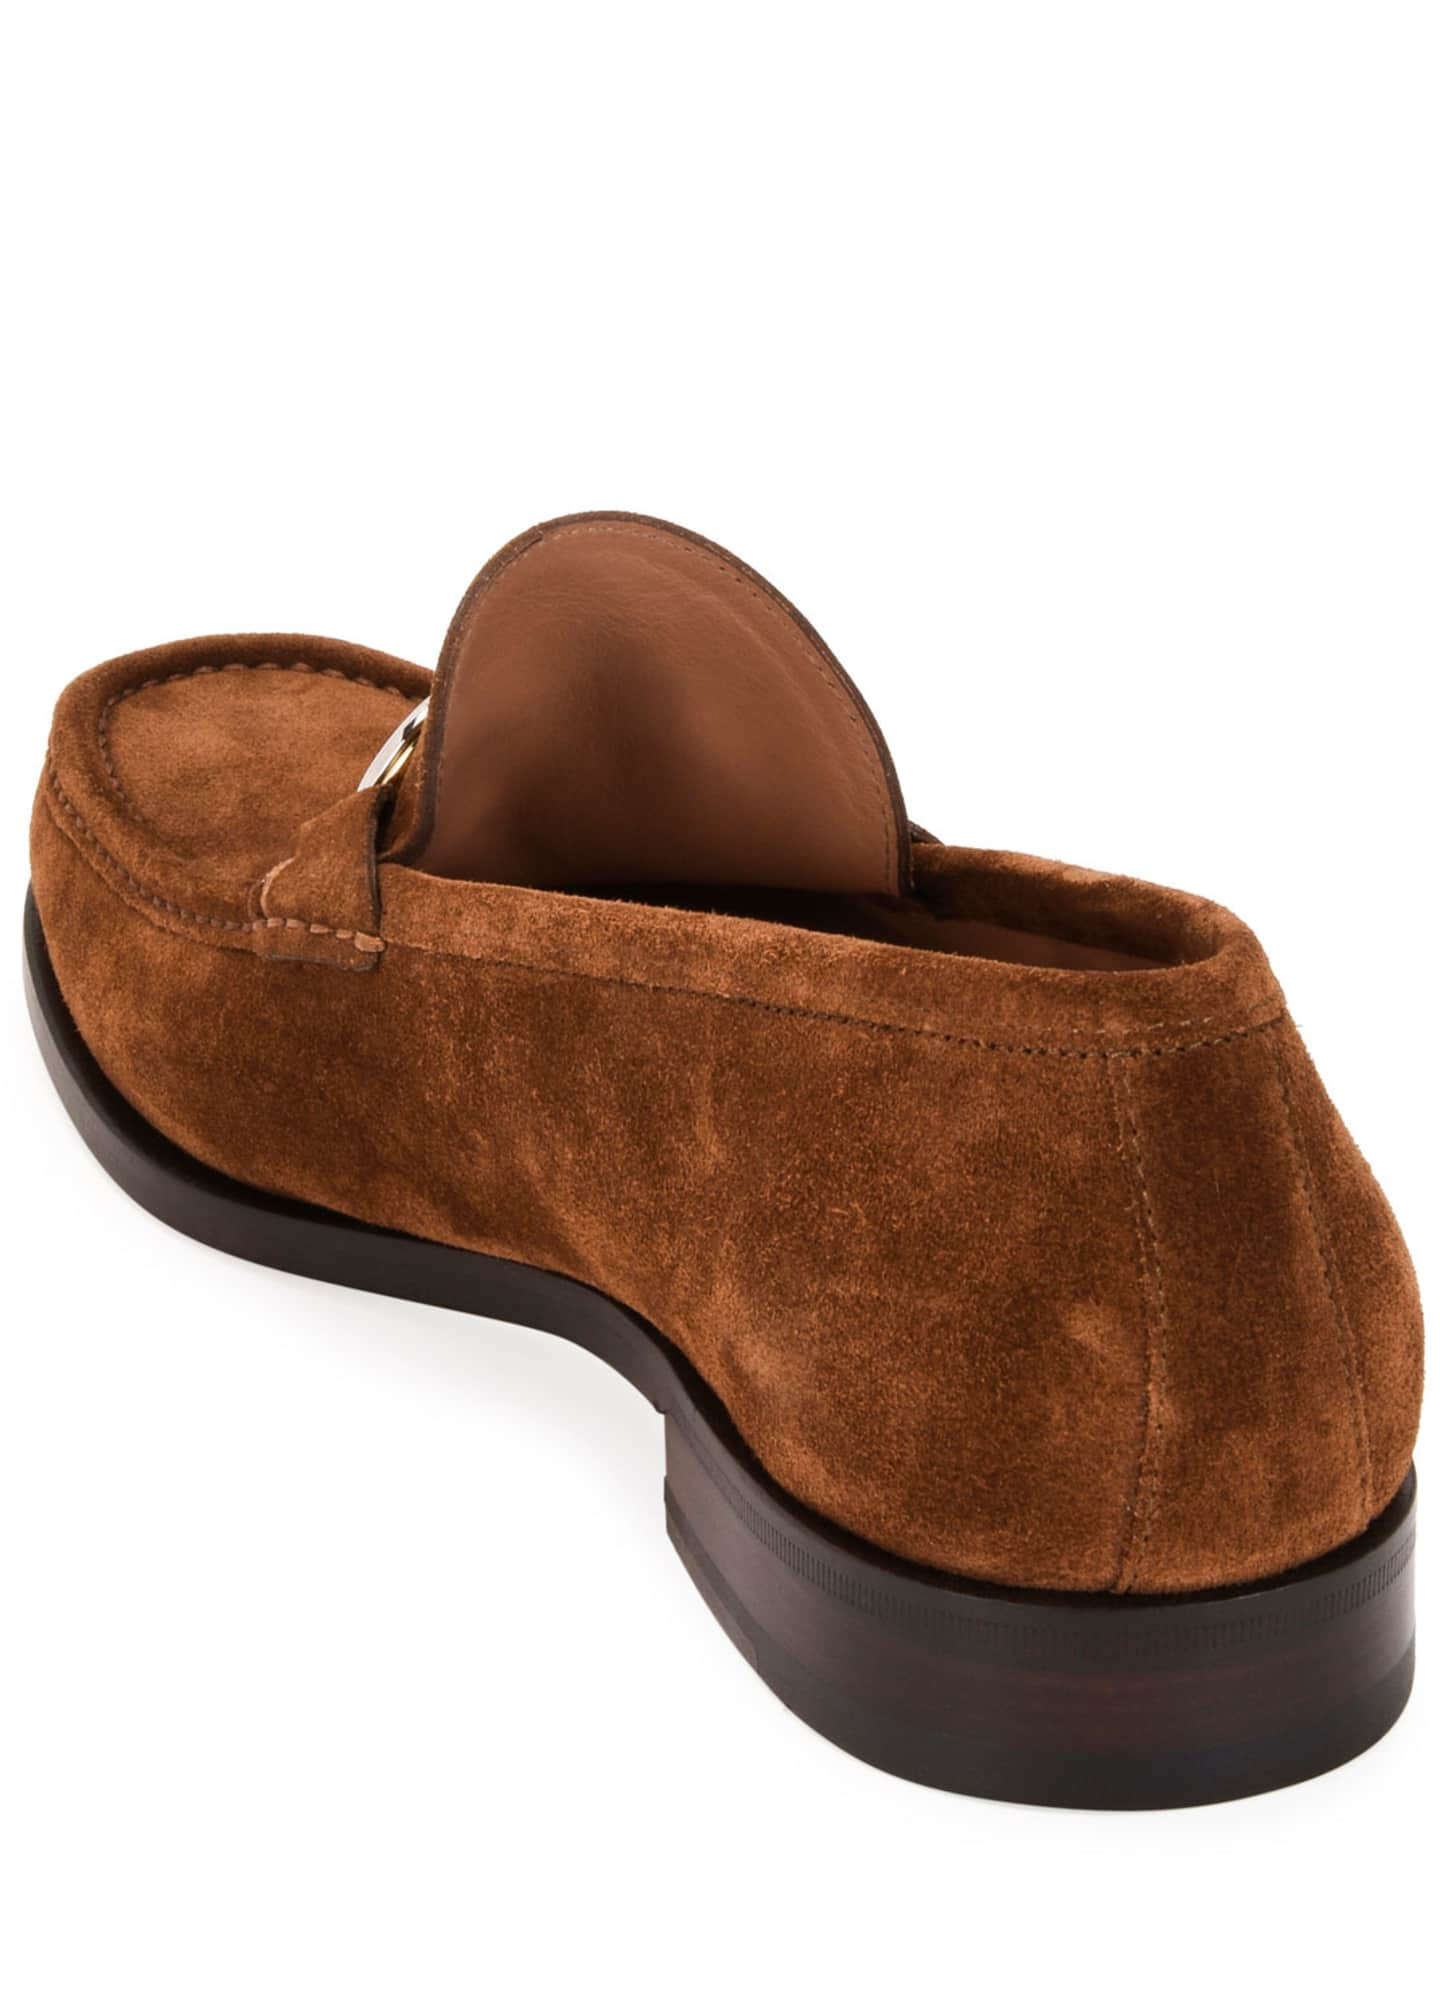 Image 4 of 4: Men's Rolo Suede Gancini-Bit Loafers